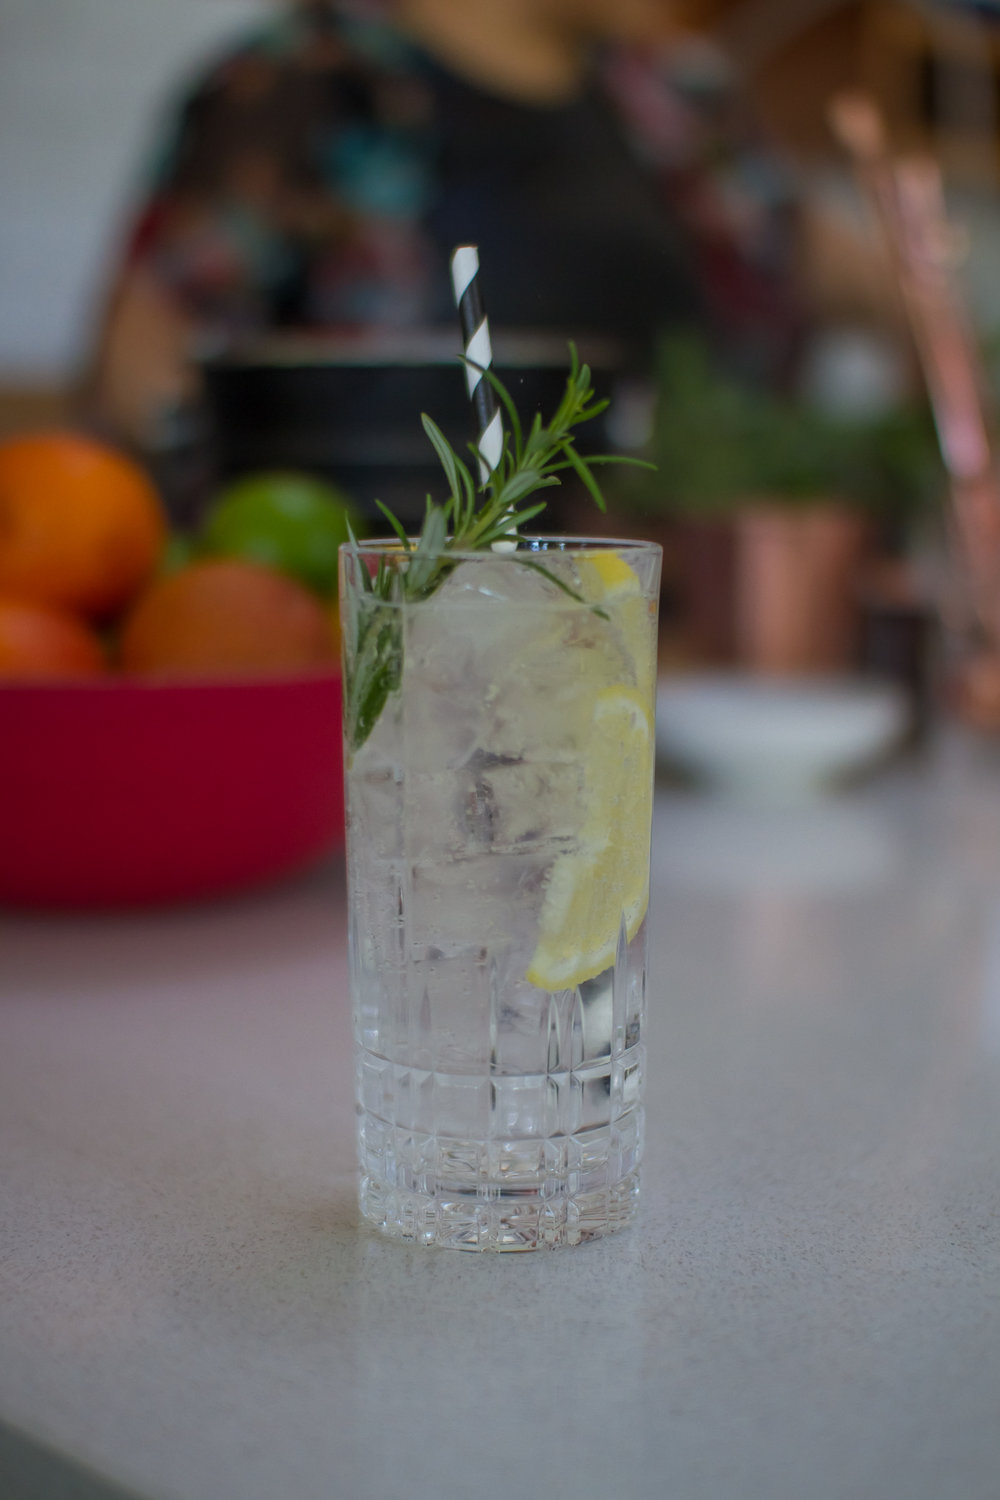 Animus Classic Dry Gin and StrangeLove No. 8 tonic, garnished with a slice of lemon and a sprig of rosemary Photo: Steve Edwards @steve_sketch